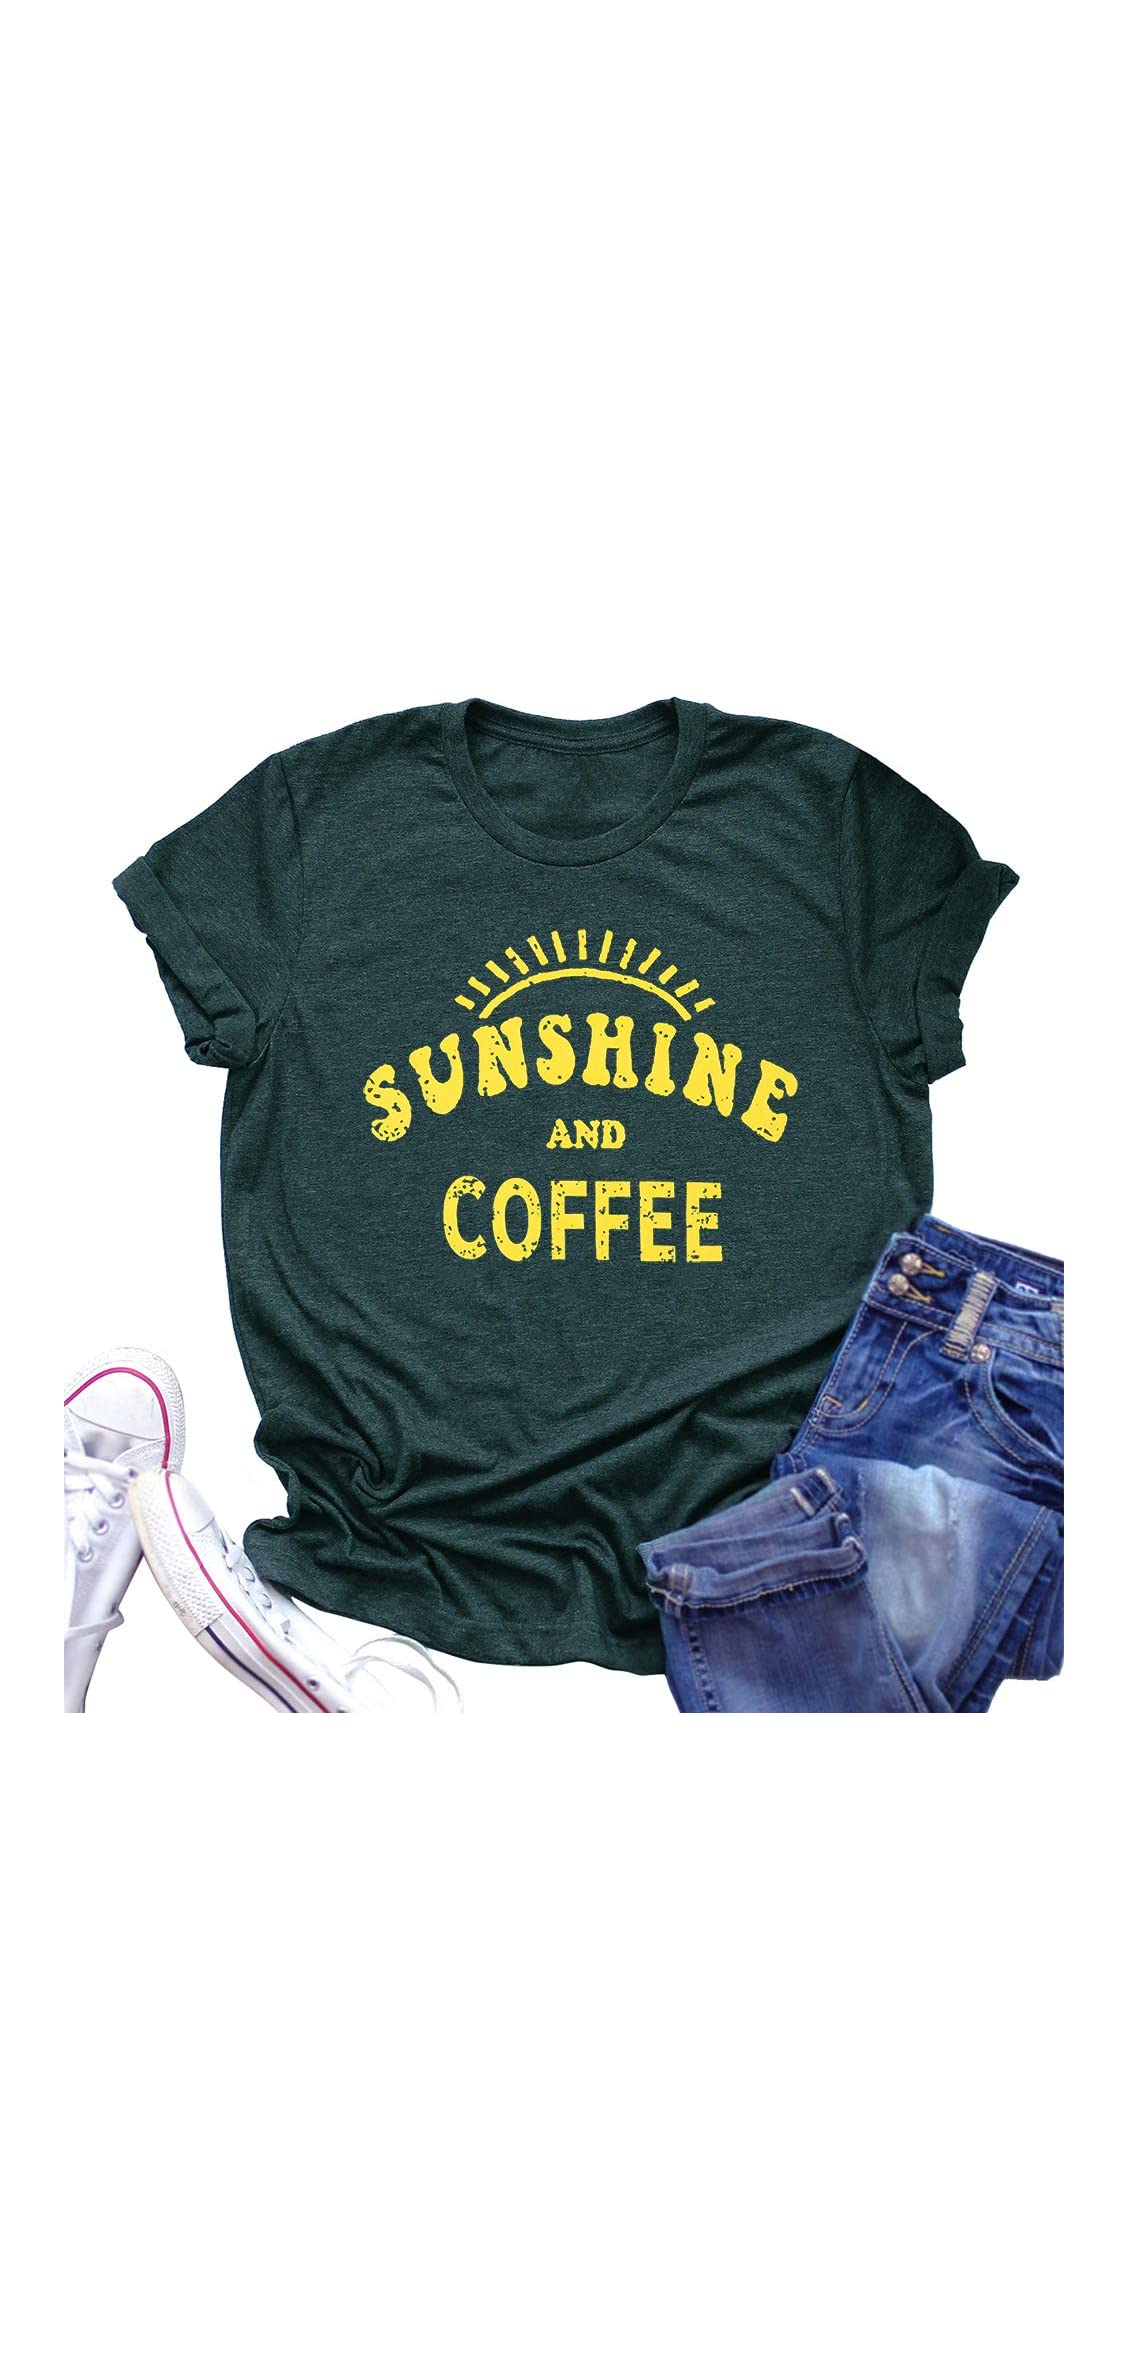 Sunshine Tshirts Funny Summer Graphic Tee Shirts For Women Print